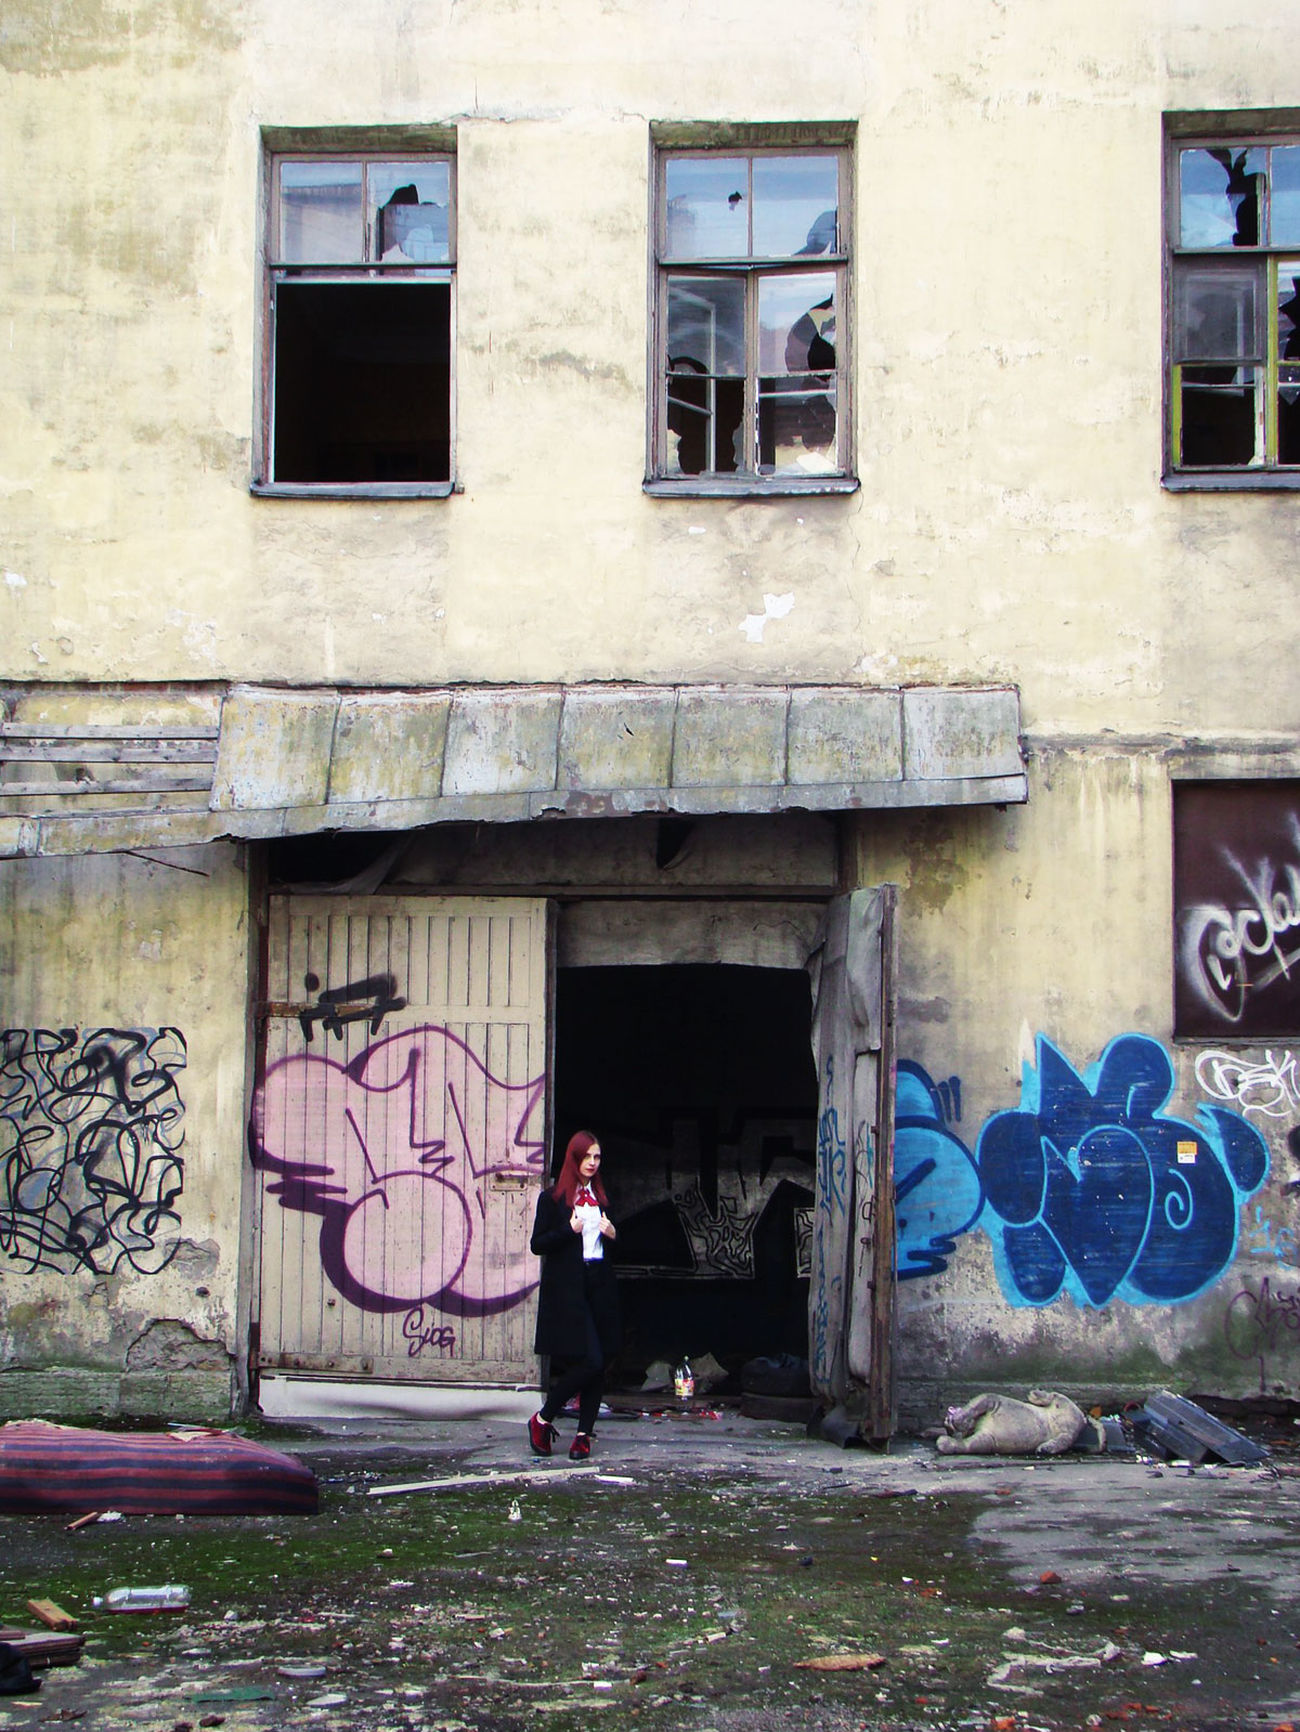 Abandoned Architecture Building Exterior Built Structure Burnt Day Entrance Full Length Graffiti Lifestyles Old Age One Person Outdoors People Real People St. Petersburg Standing Window Young Adult